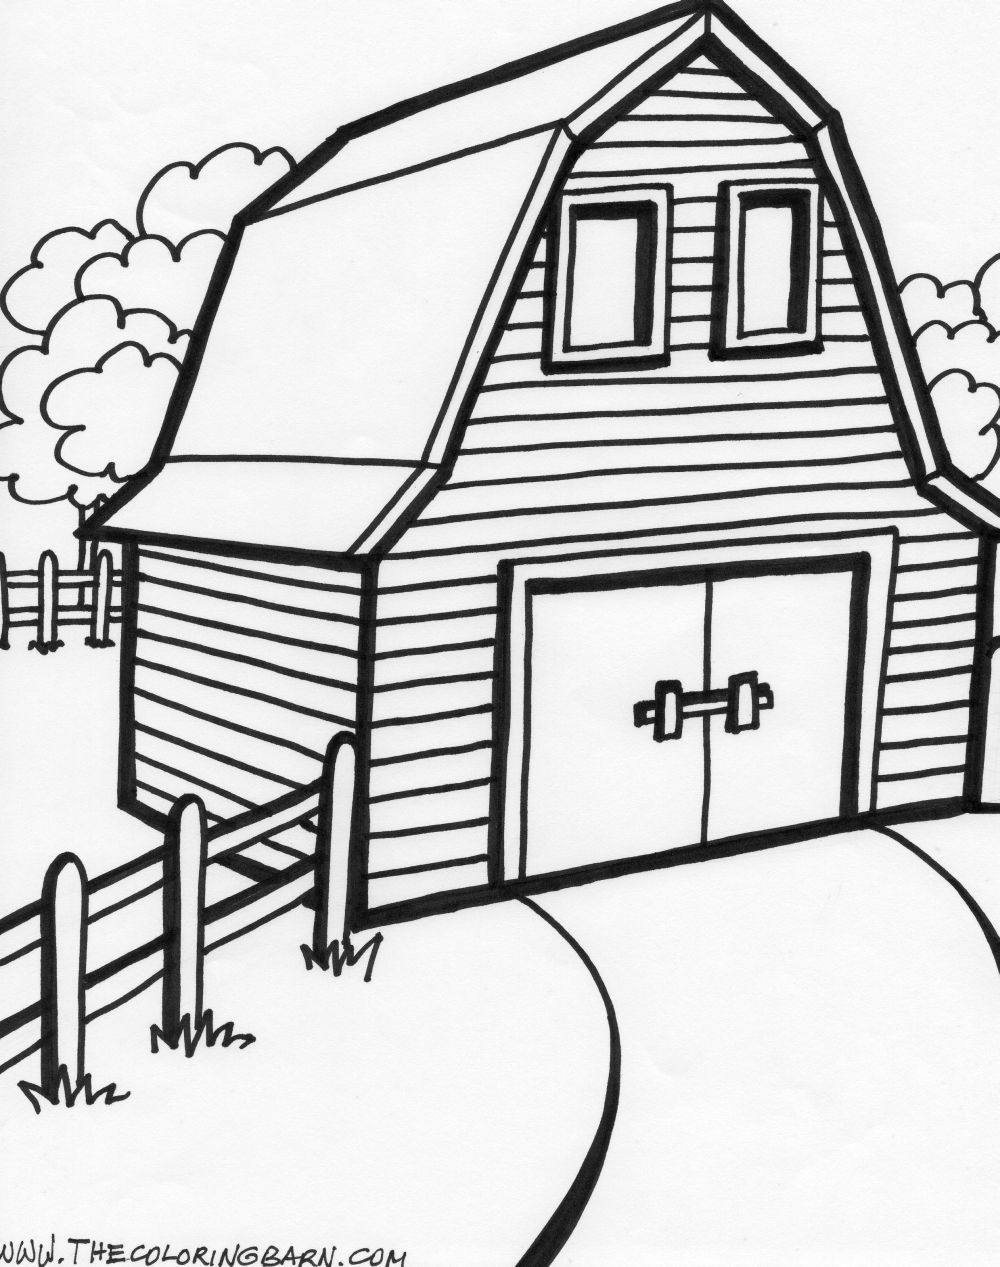 Old macdonalds barn farm animal coloring pages pattern coloring pages coloring sheets printable